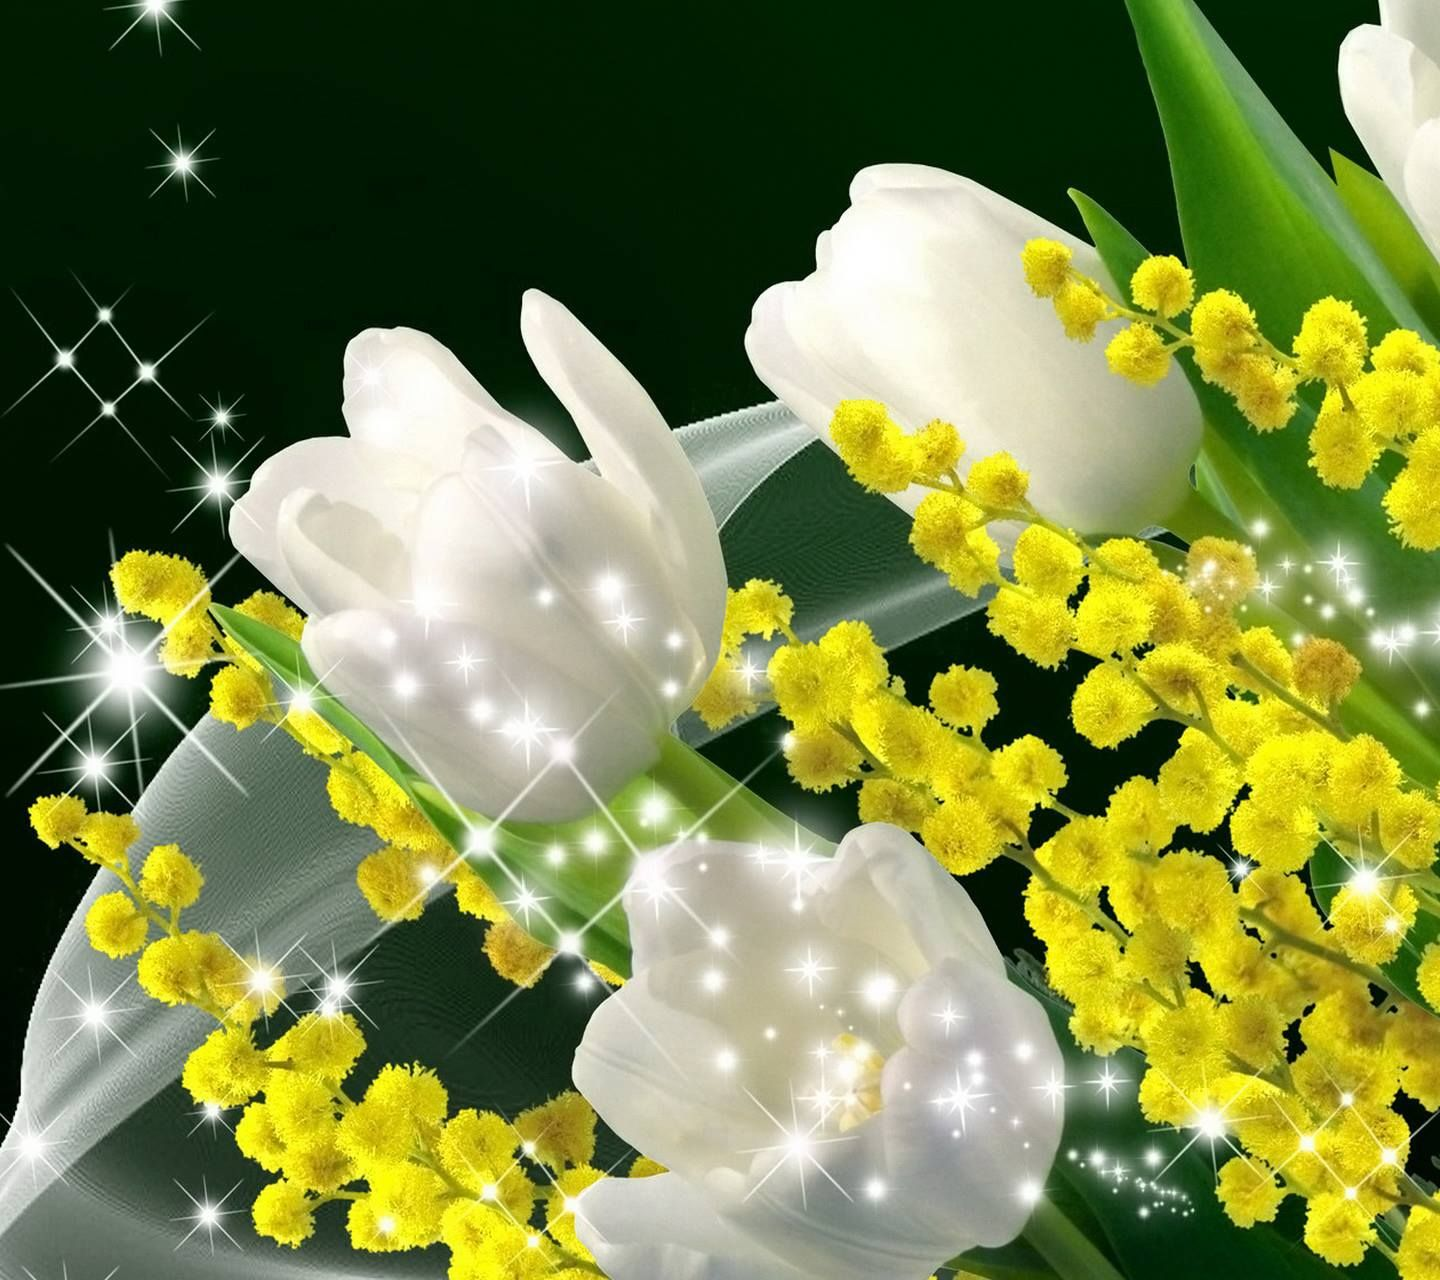 Awesome beauty black background with the beauty of flowers and